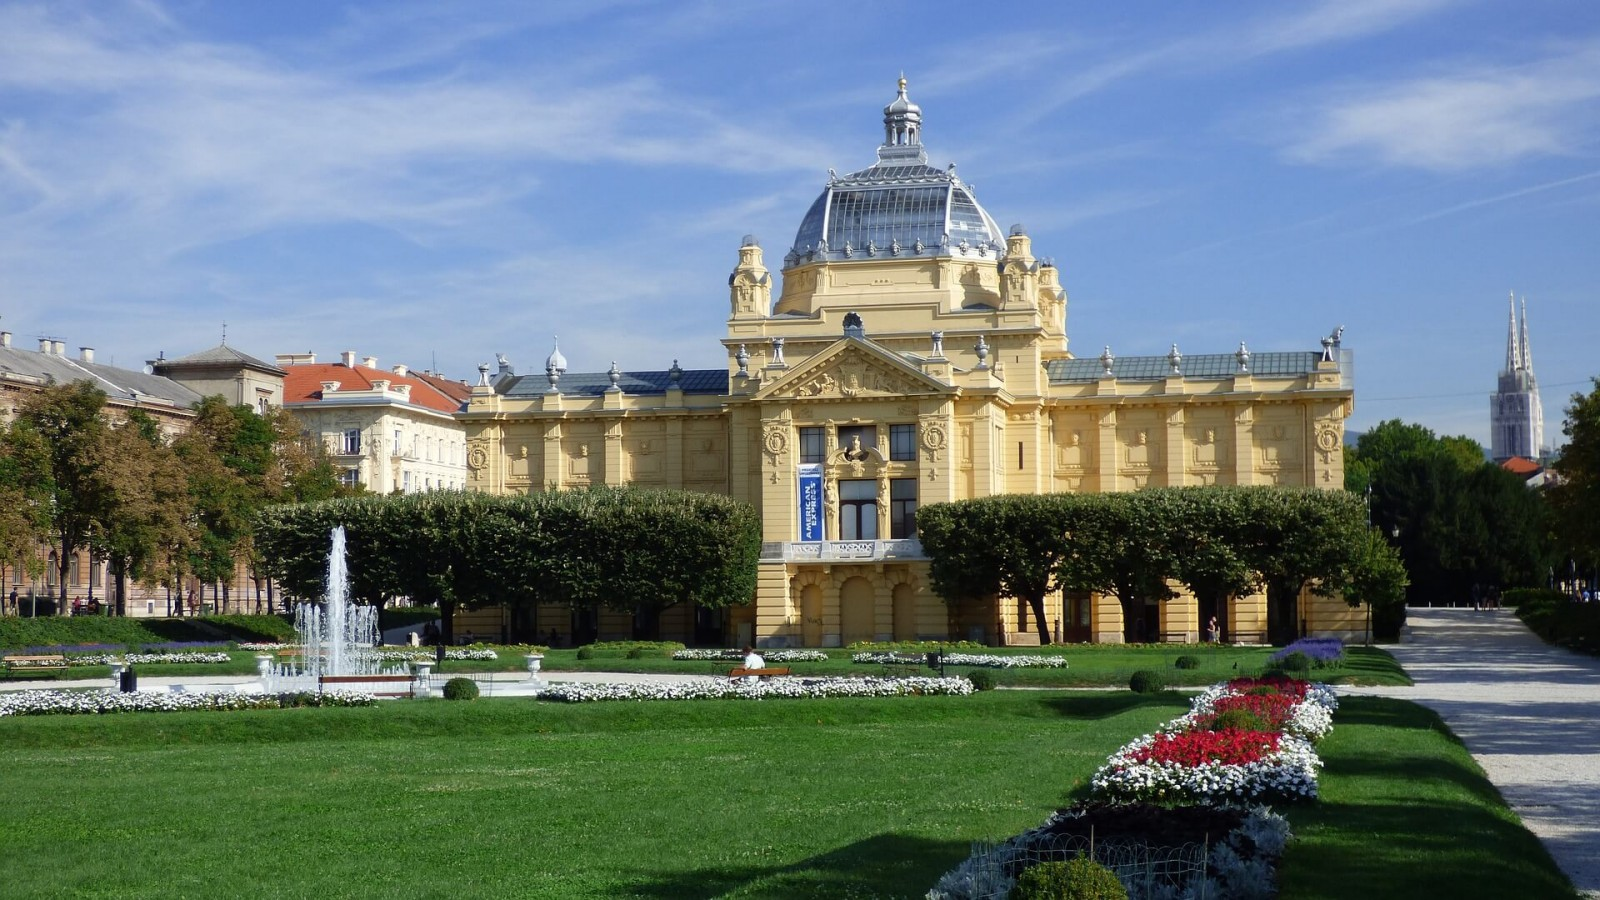 Sights in Zagreb you must visit